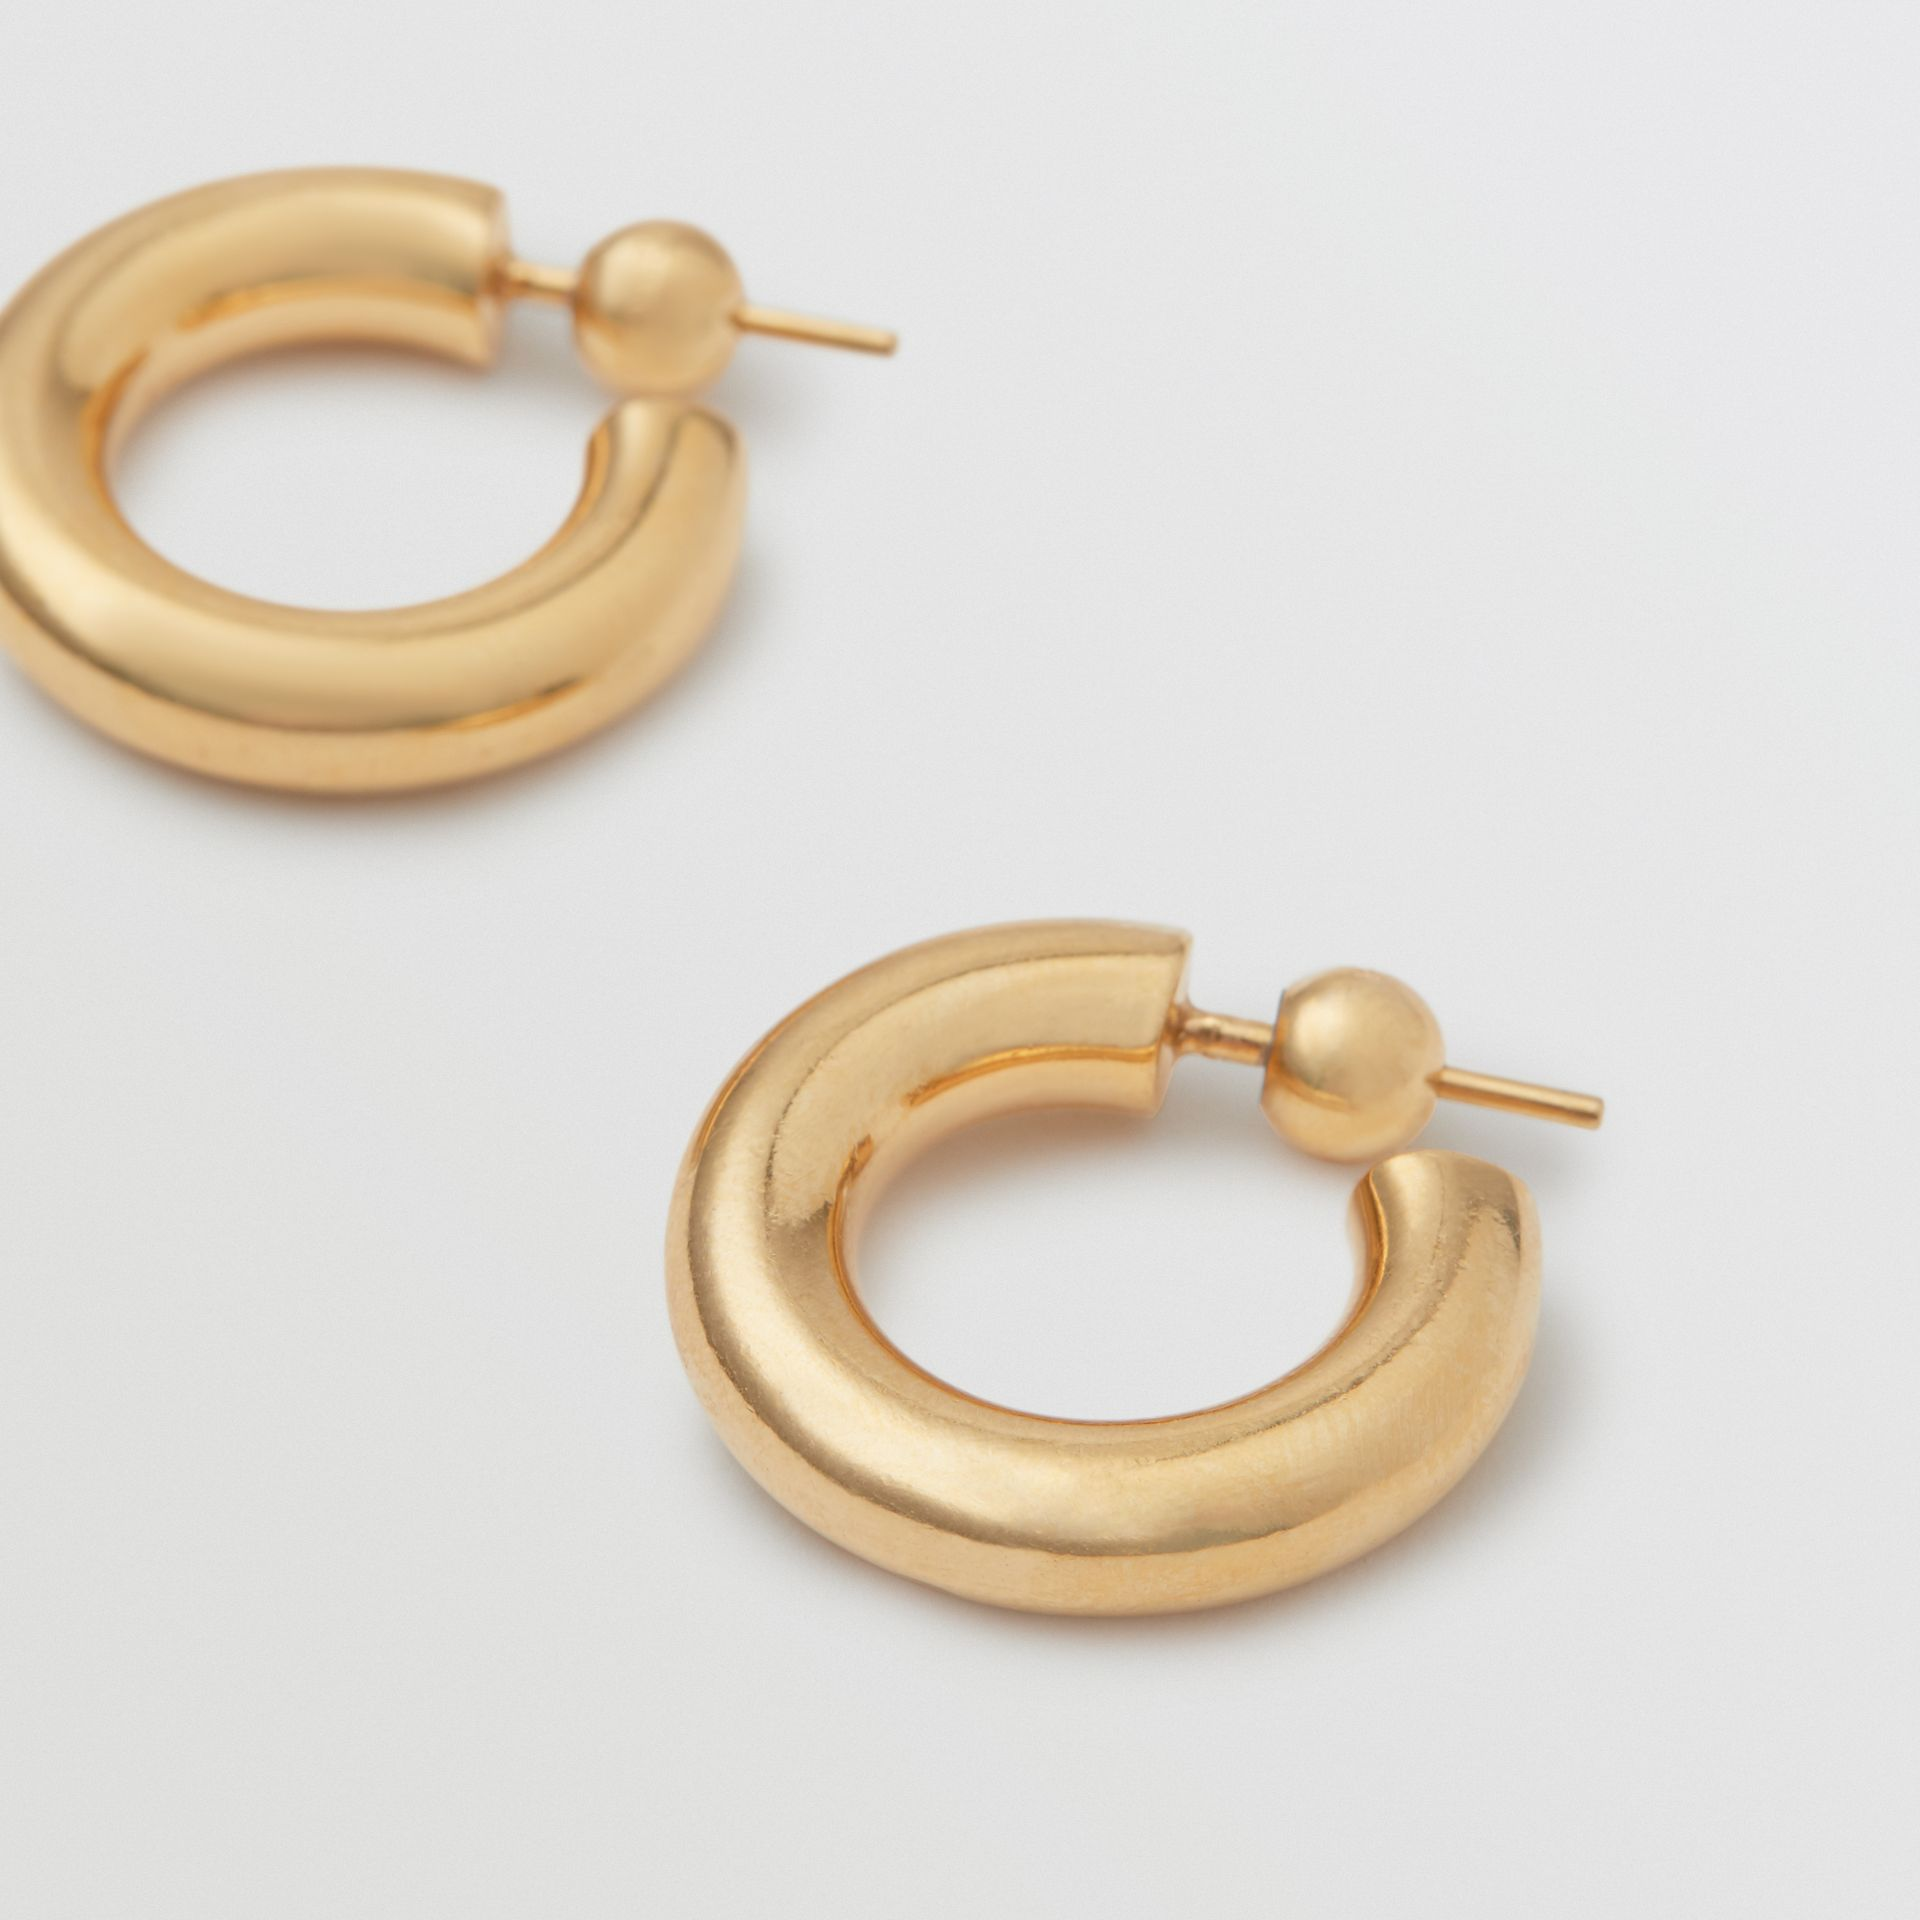 Gold-plated Hoop Earrings in Light - Women | Burberry United States - gallery image 1